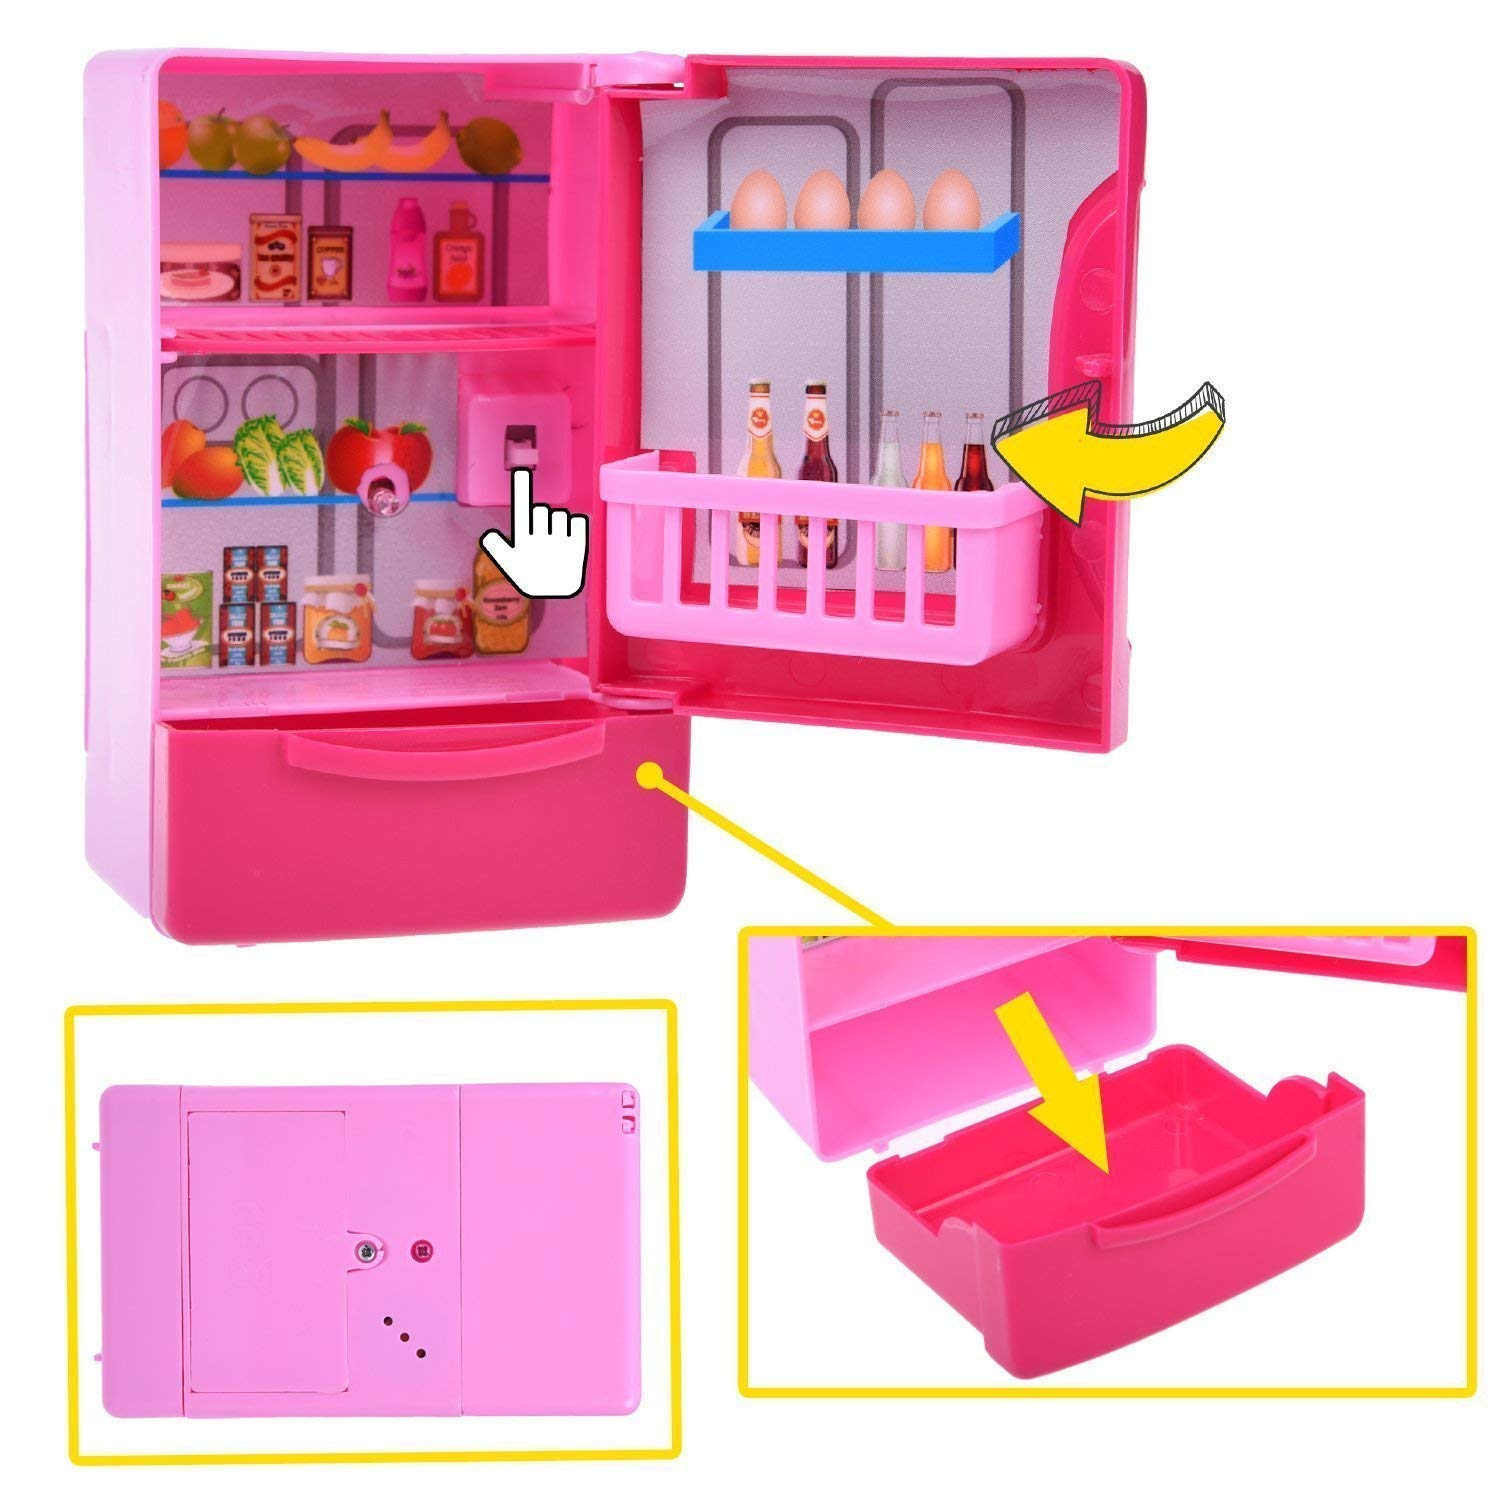 Kitchen Toys for Kids, 6PCs Mini Electric Simulation Play Kitchen Accessories Inculiding Microwave Oven, Toaster, Refrigerator, Rice Cooker, Egg Stepper, Pink Kids Cooking Set Appliances for Girls by FUN LITTLE TOYS (Image #6)